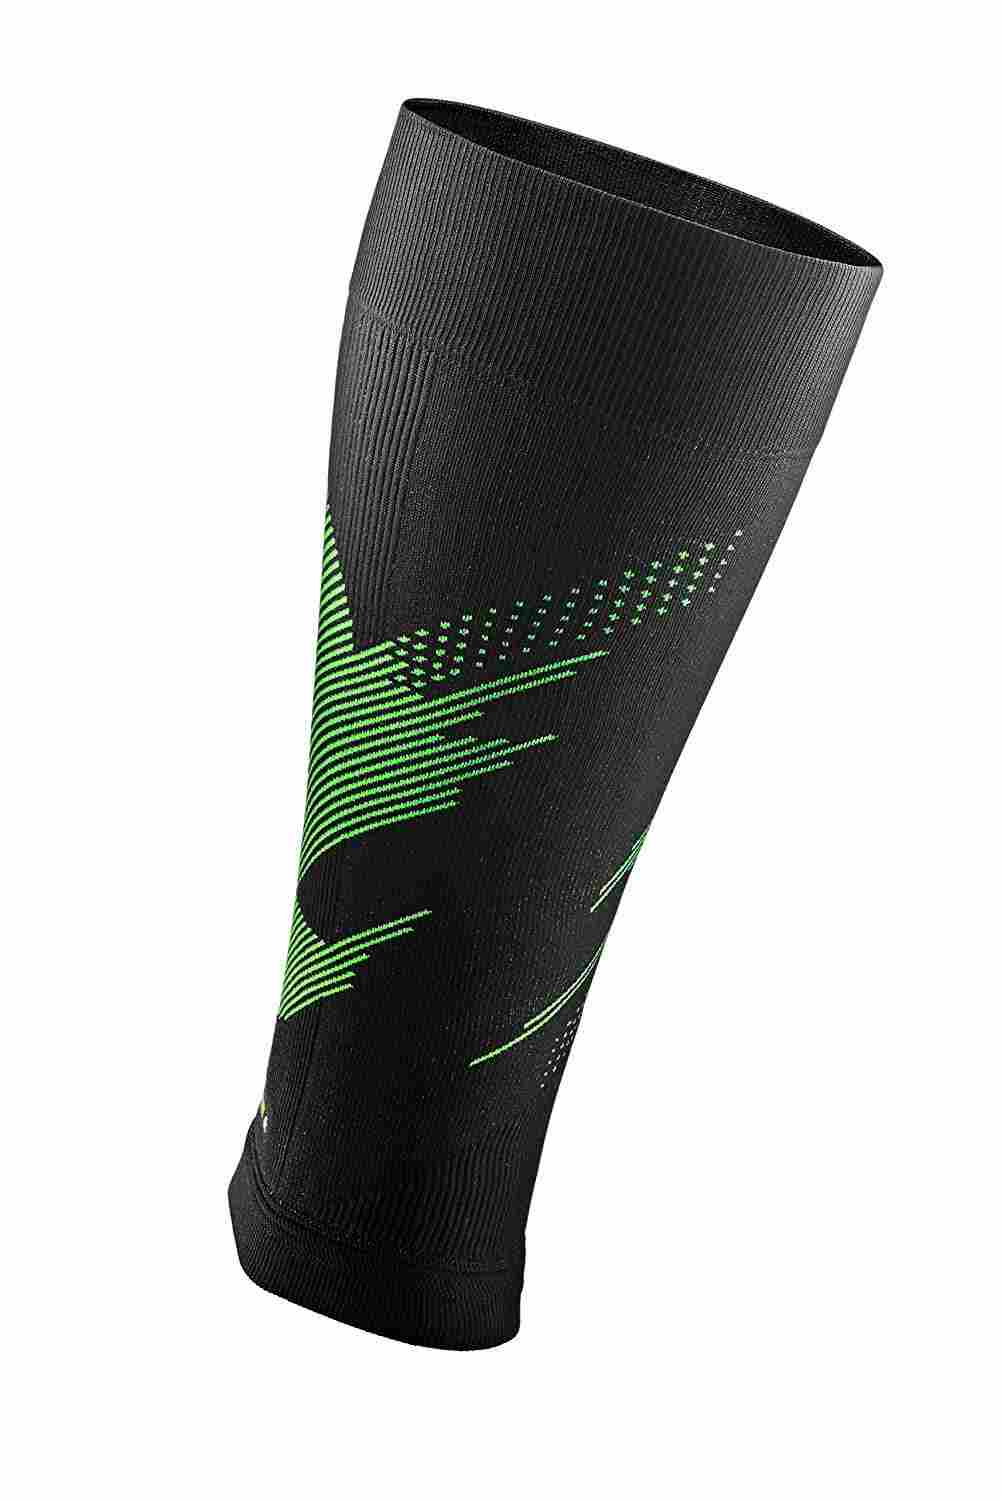 Whether You Are Looking For A Birthday Or Christmas Gift There Is One Product That Any Runner Would Appreciate The Rockay Blaze Graduated Compression Leg